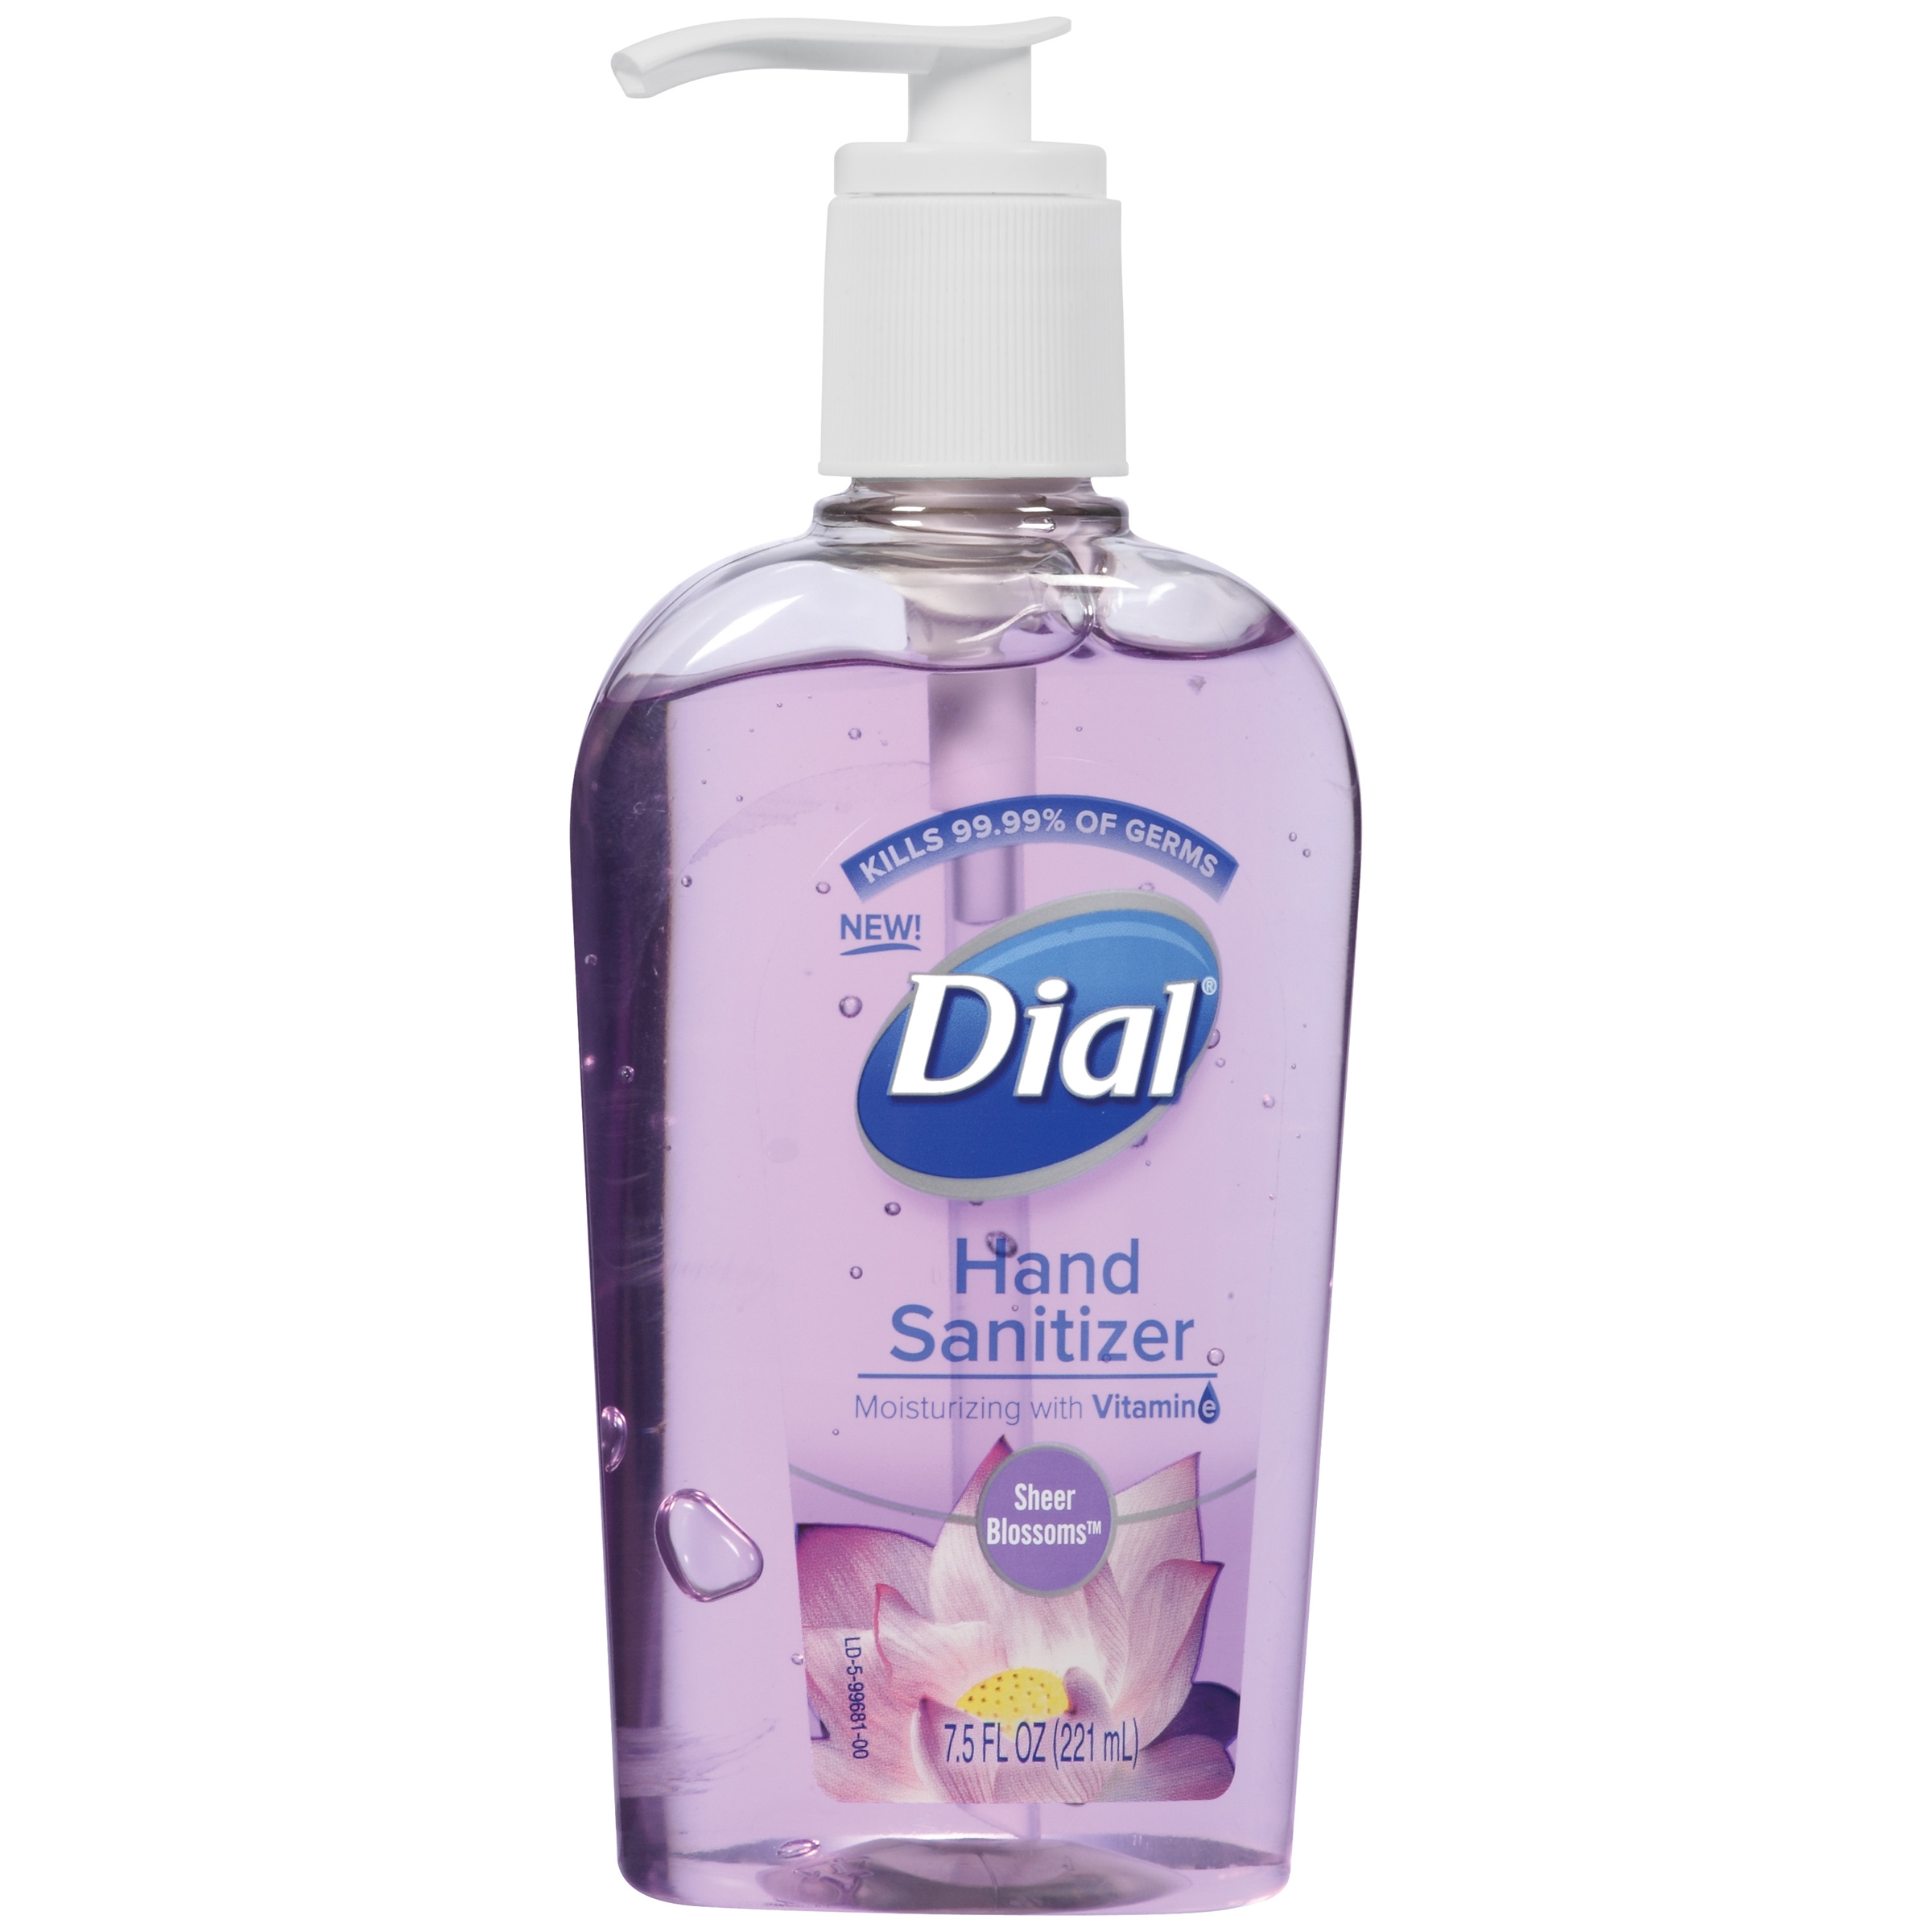 Dial Scented Antibacterial Hand Sanitizer DIA99681 by Dial Corporation